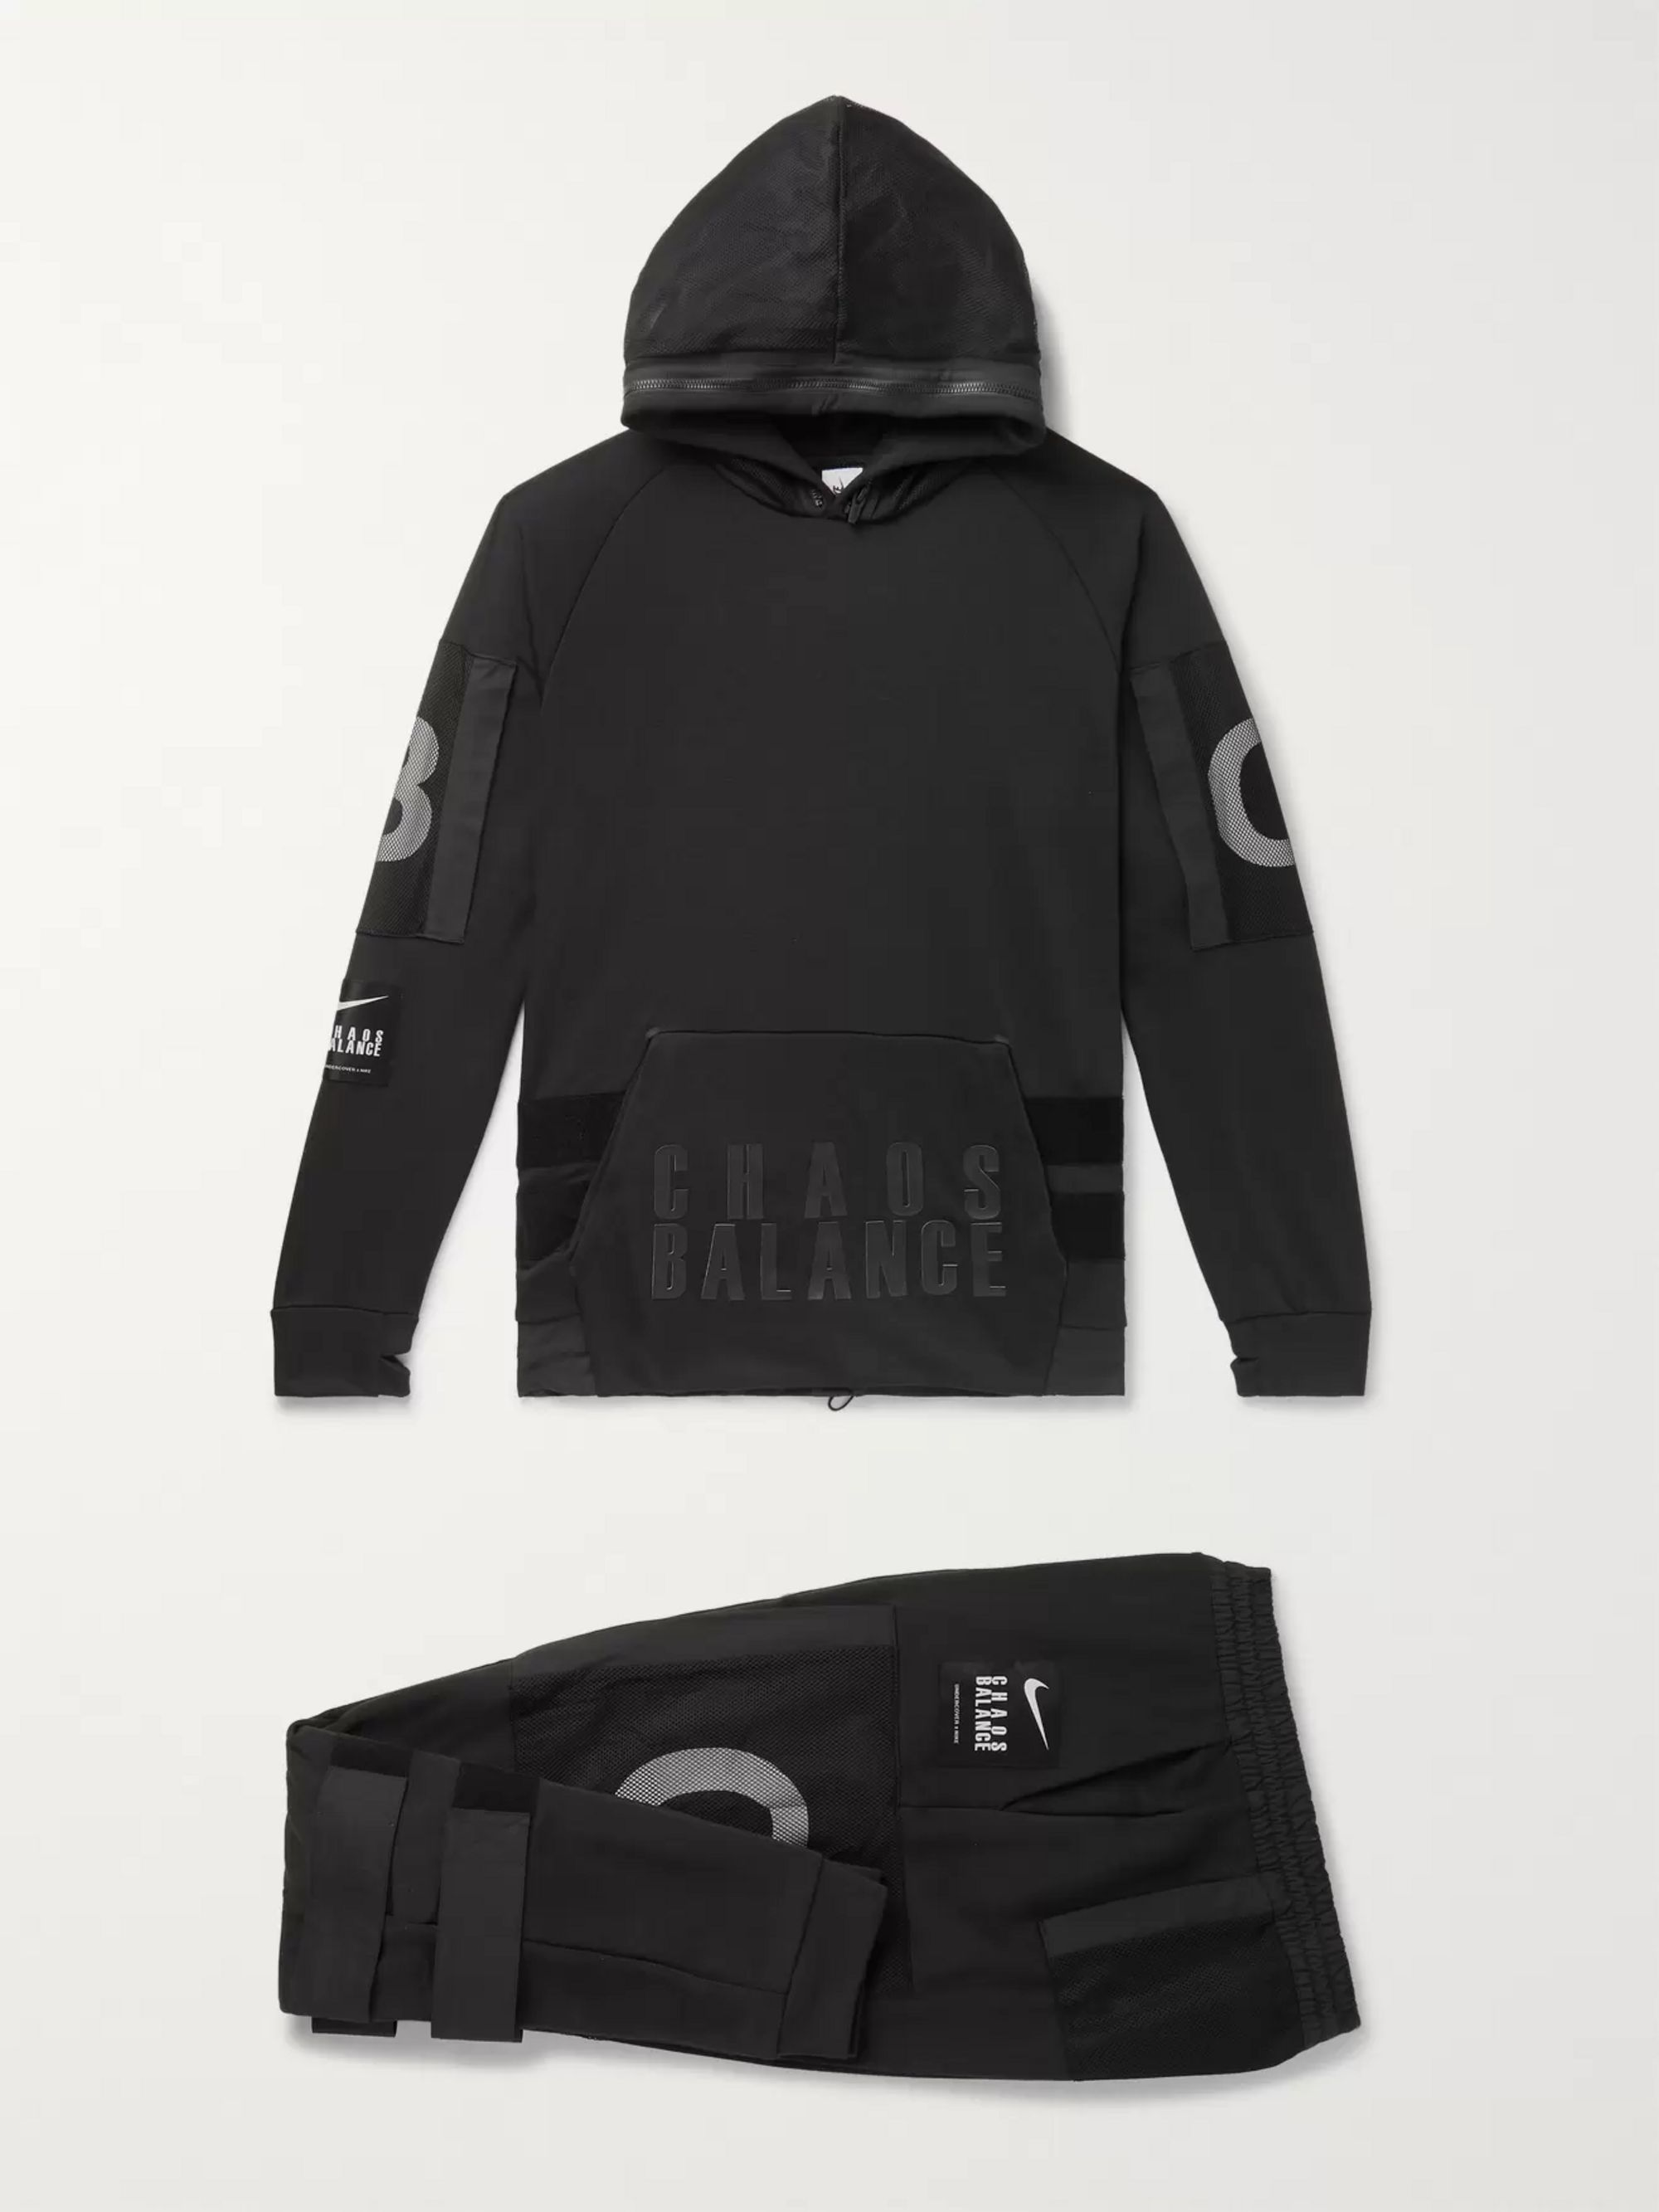 + Undercover NRG Tech Jersey Tracksuit